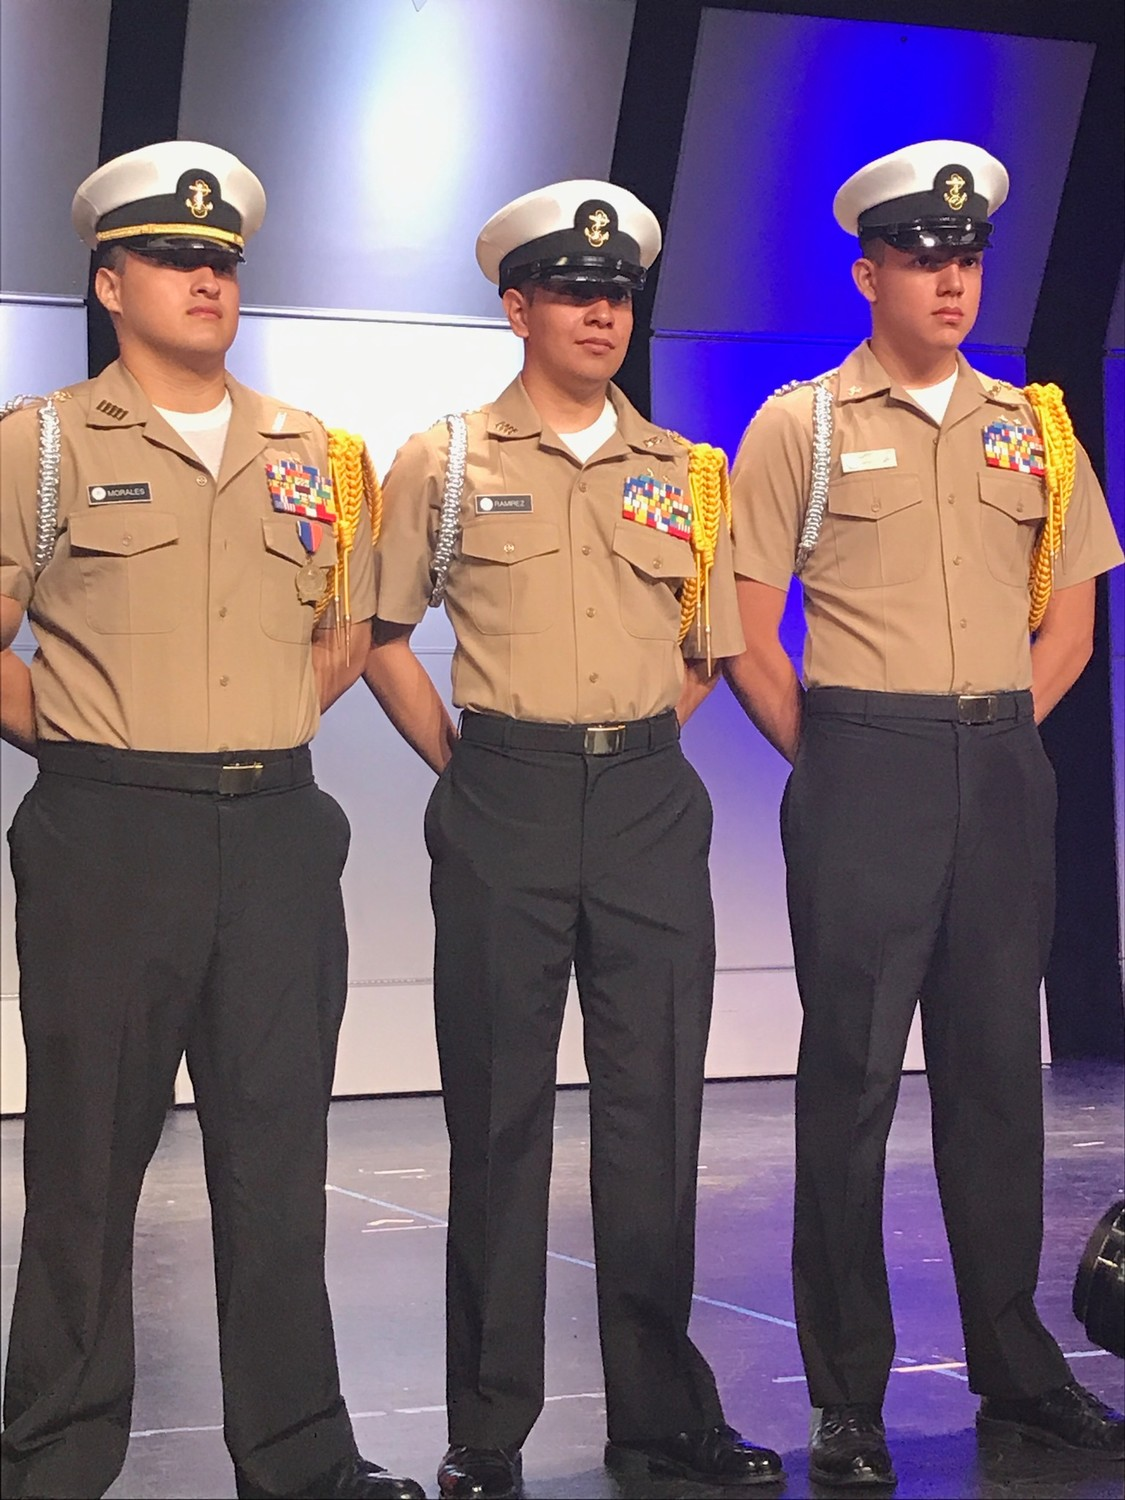 During the 2017 Memorial Day ceremony in the Freeport High School auditorium, Franco Ramirez, center, stood alongside Navy Junior ROTC commrades, Jonhansen Morales, left and Erick Rivera, right. Ramirez is the executive officer and the second in command for the entire unit at the school.